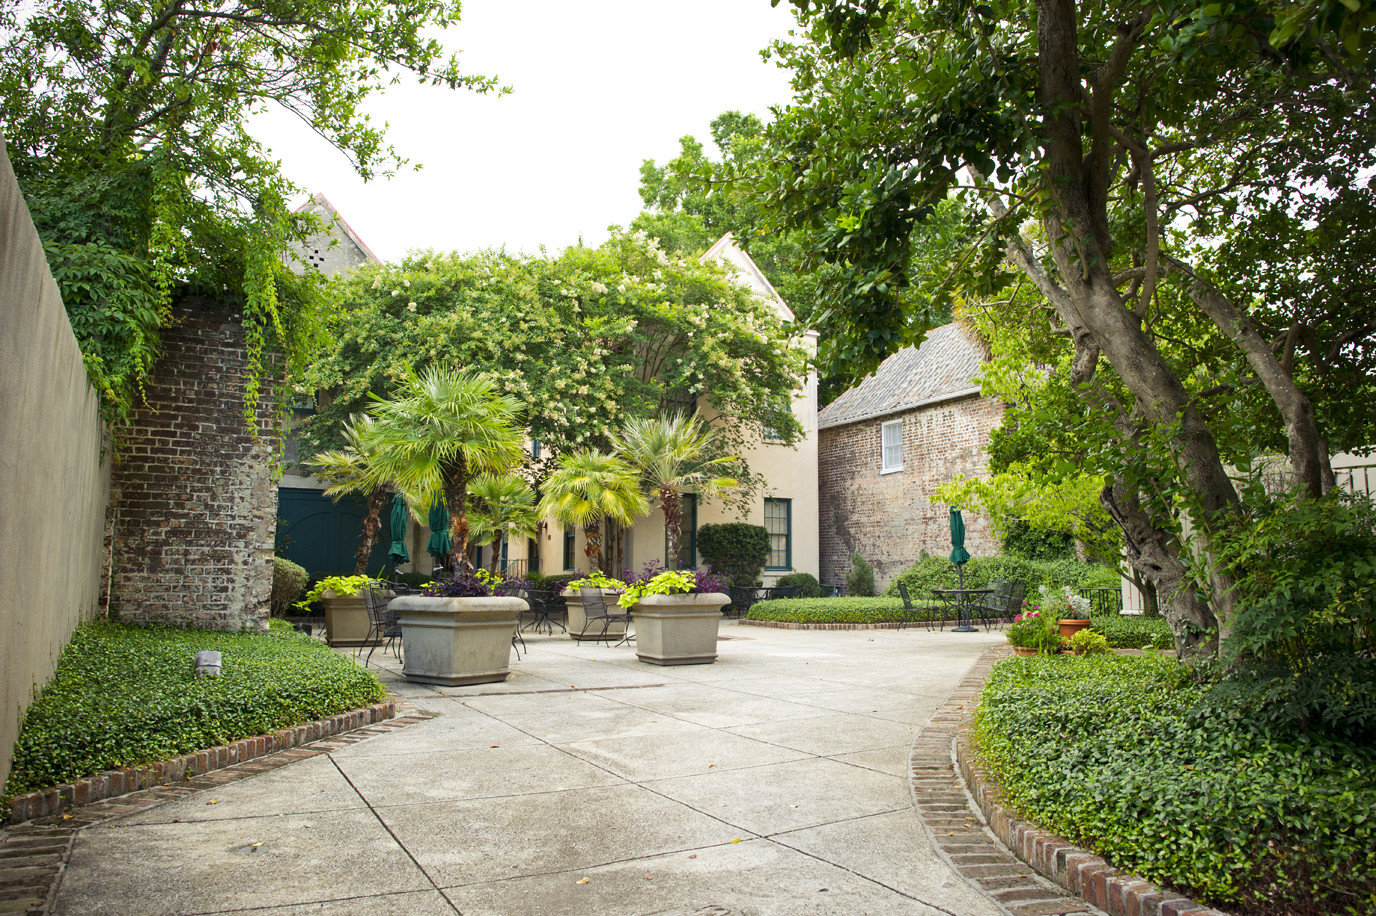 Hotels tree outdoor ground grass property Garden estate Architecture Courtyard real estate leaf walkway arecales plant sidewalk home park hacienda landscape house palm tree Villa plantation outdoor structure landscaping shrub yard mansion stone cement concrete curb